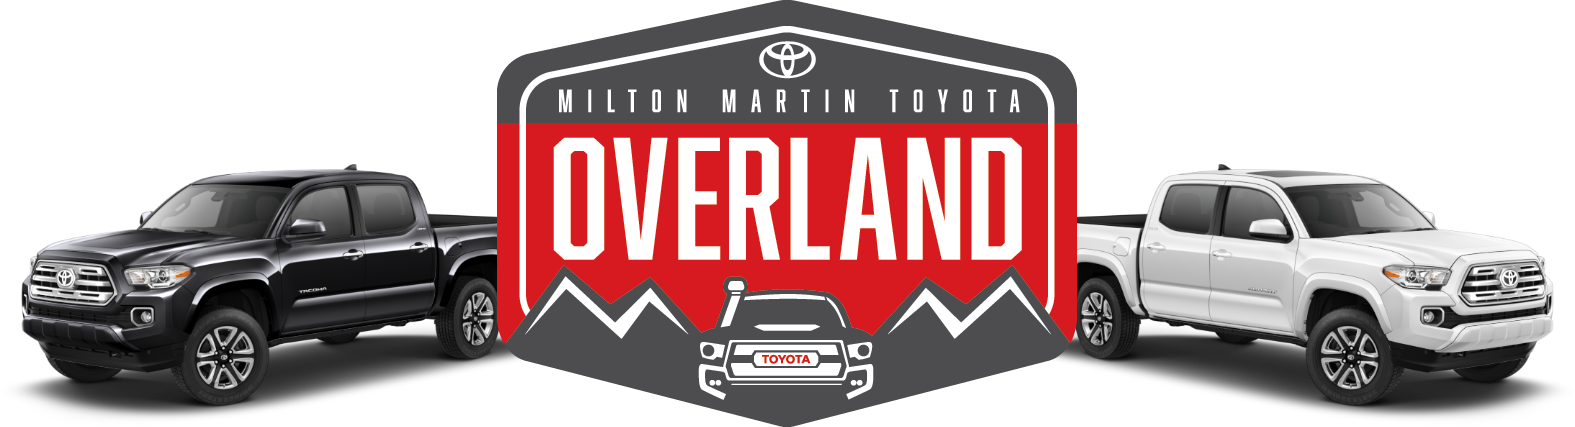 Overland Off-Road Course Milton Martin Toyota